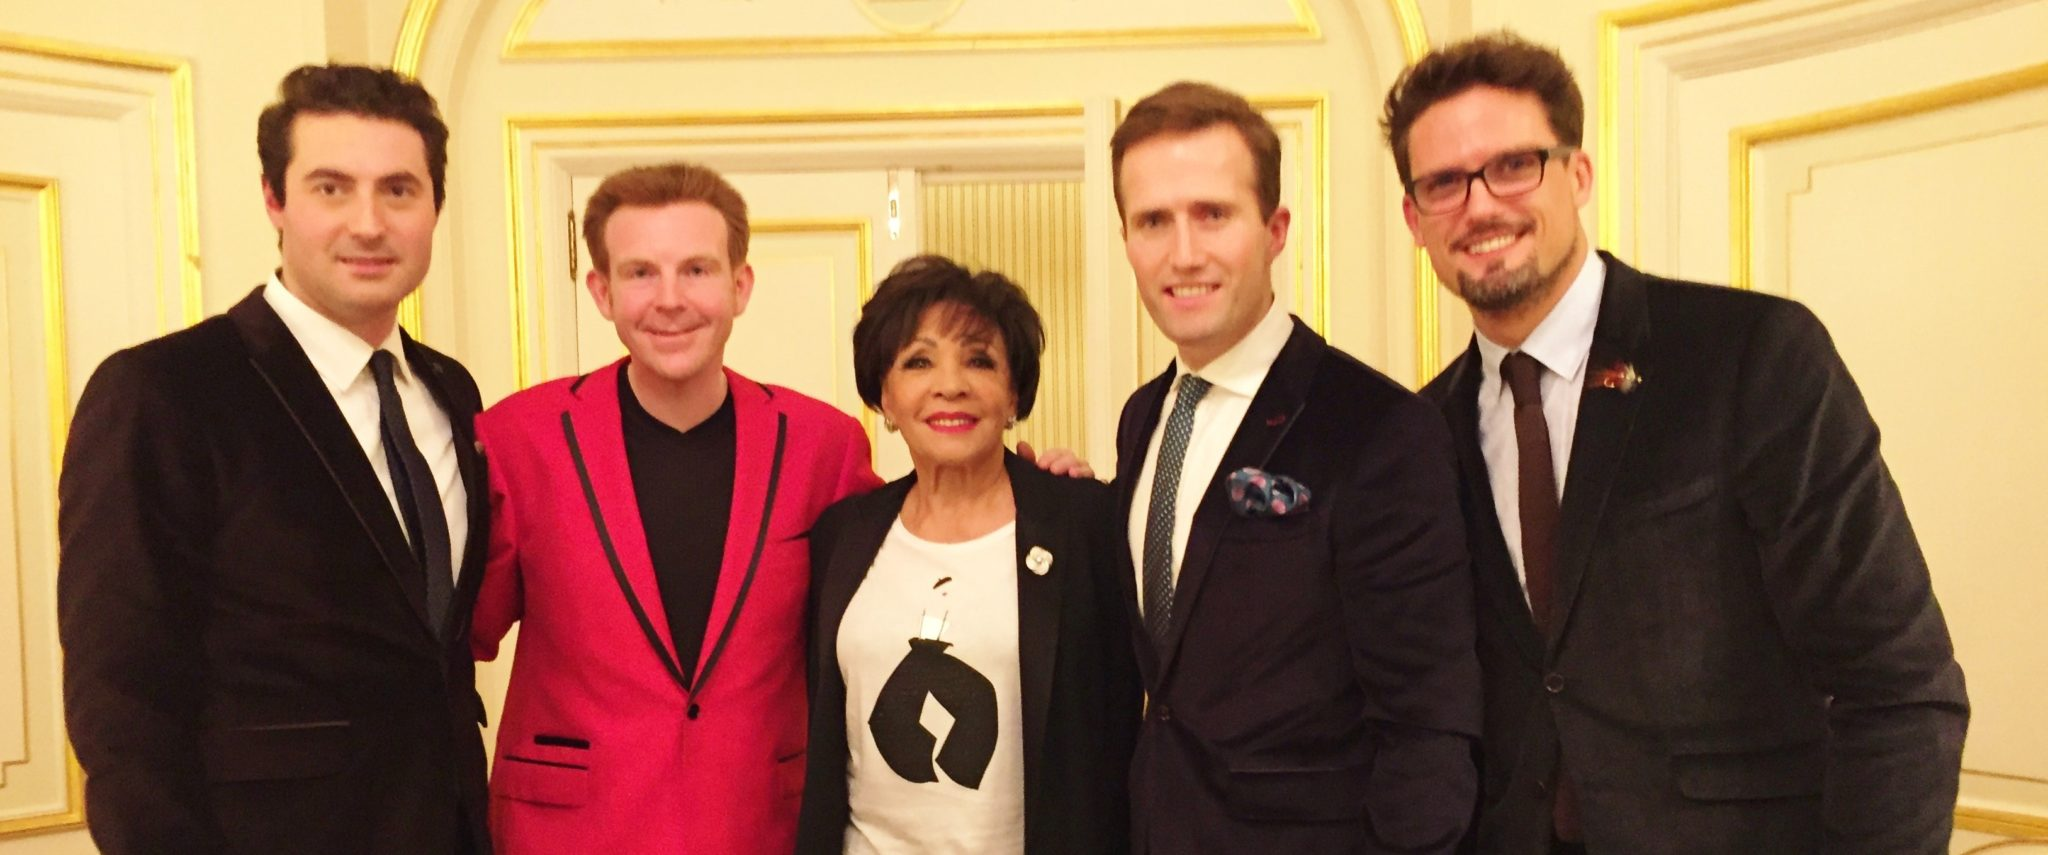 Enjoy Celebrity Radio's Dame Shirley Bassey World Exclusive In-Depth TV Interview… Dame Shirley Bassey has teamed up with the brilliant classical trioBlake for her first […]